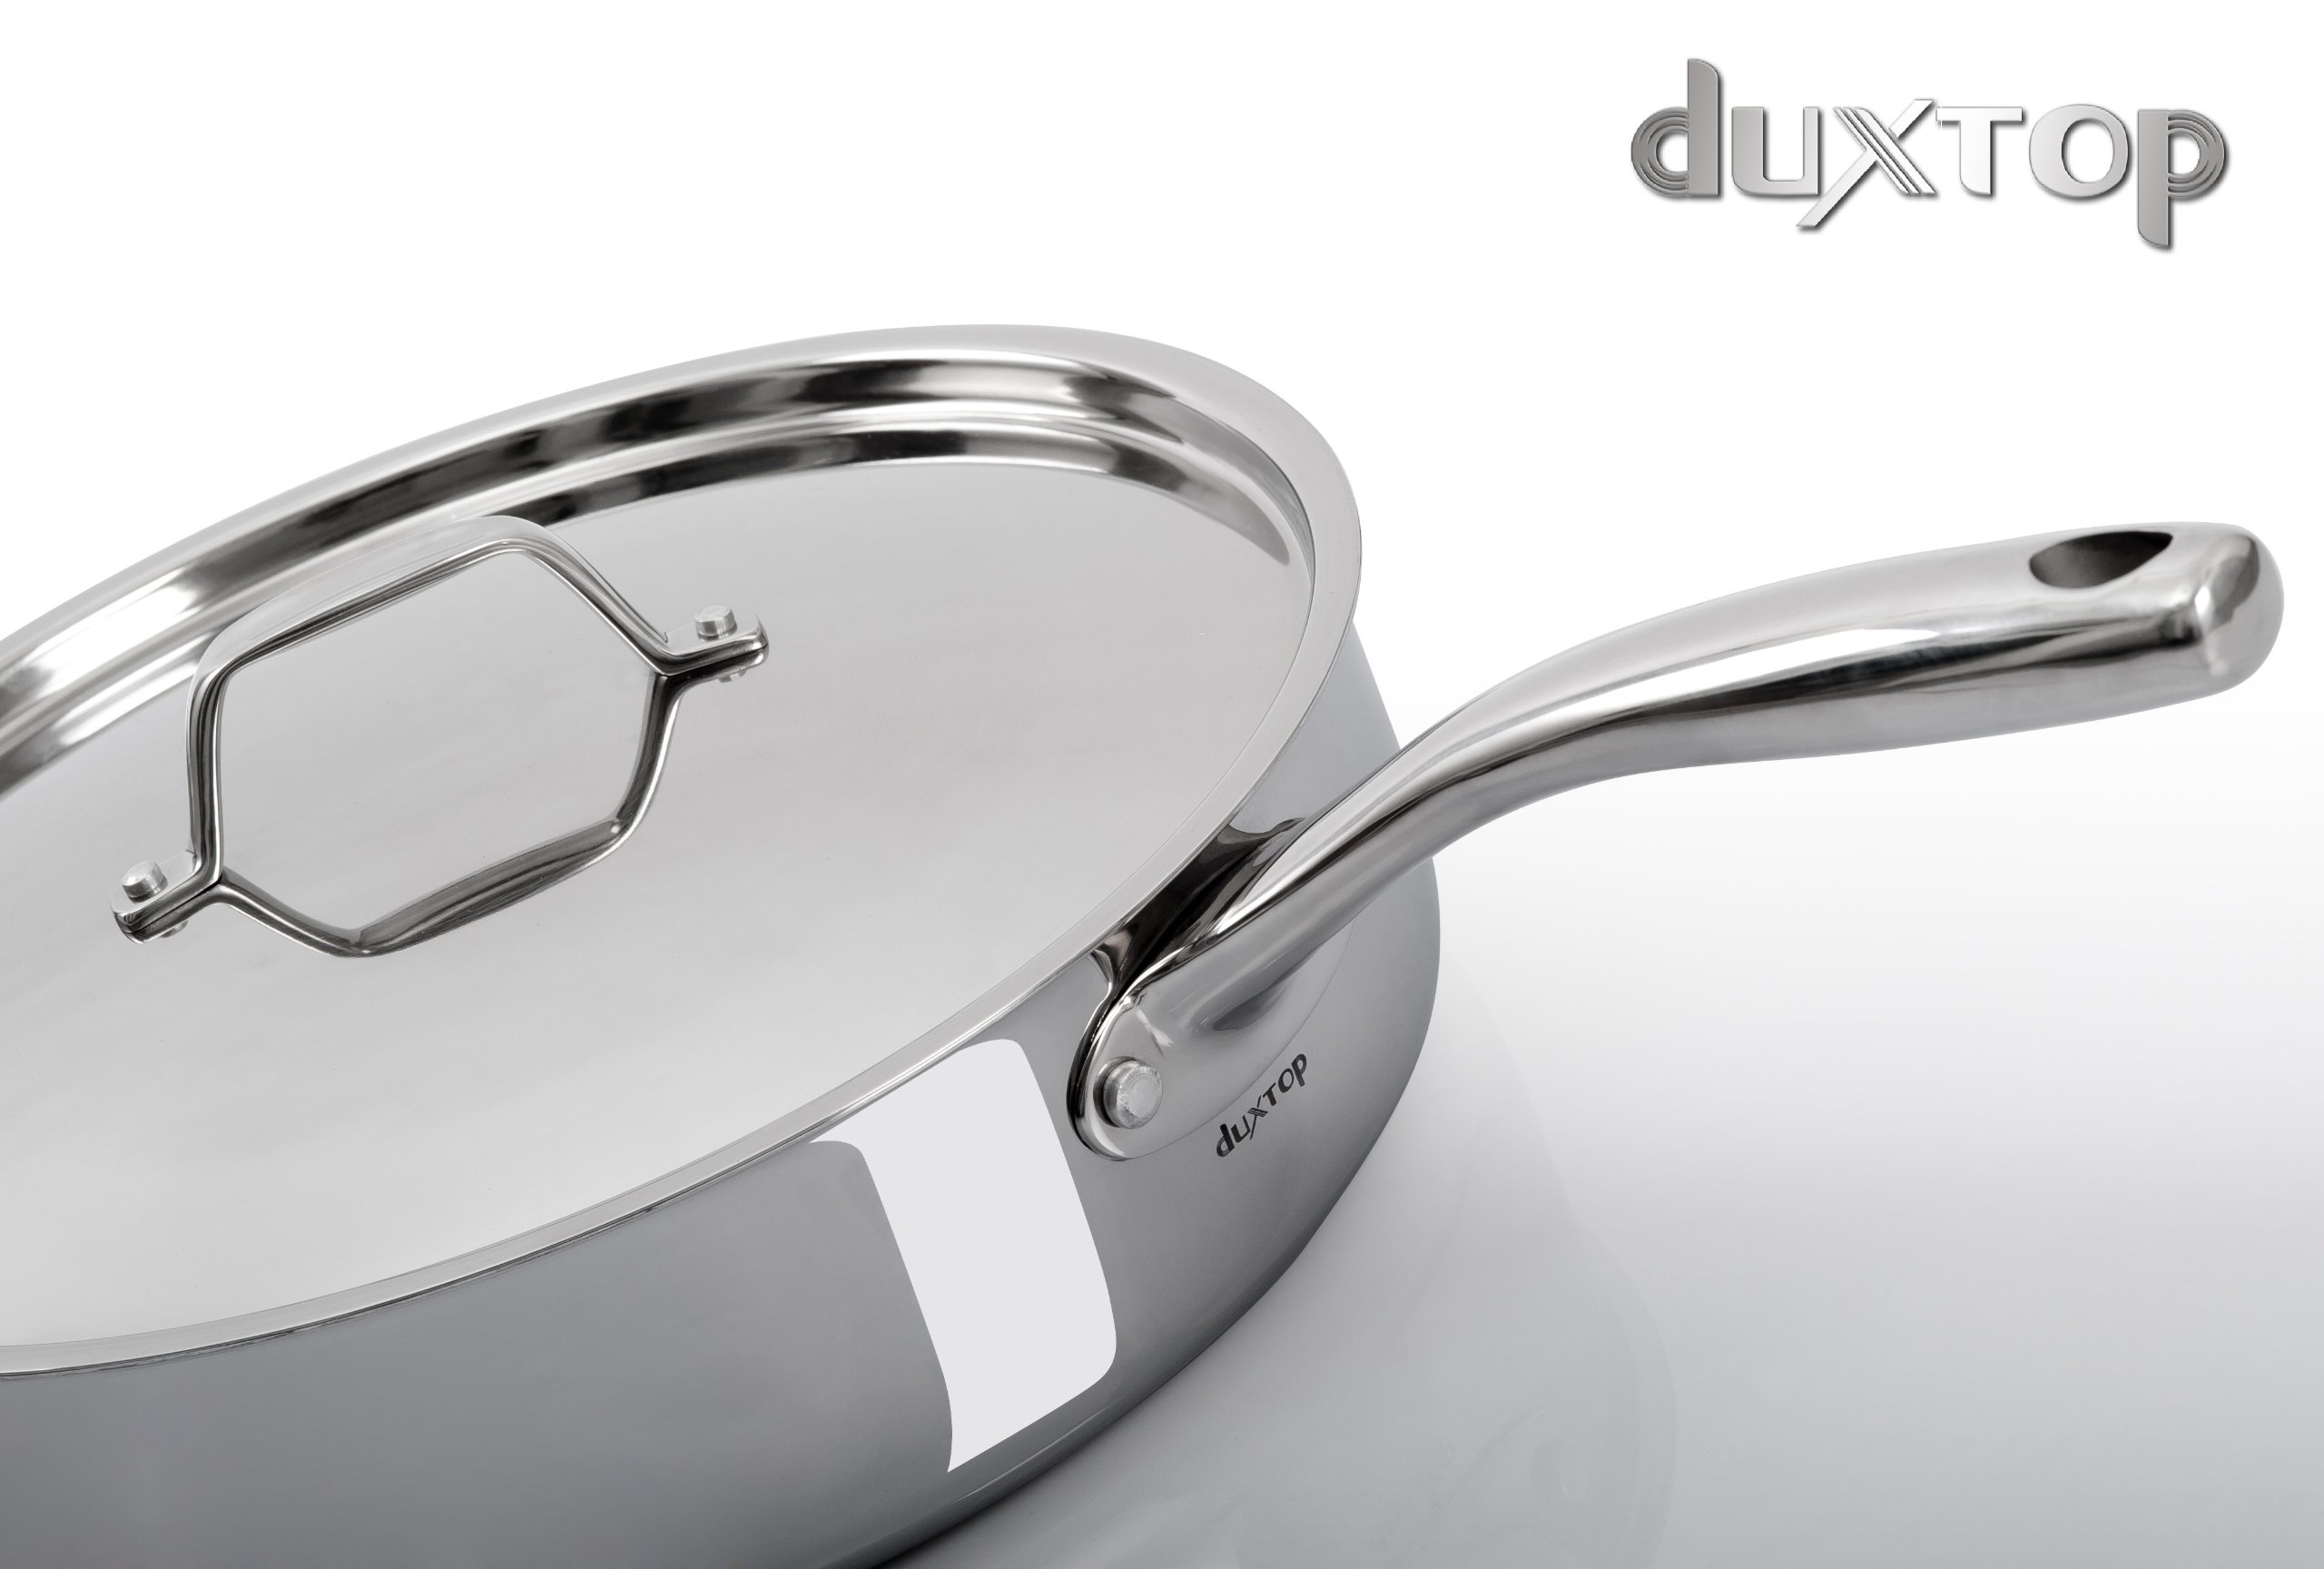 Duxtop Whole Clad Tri Ply Stainless Steel Induction Ready